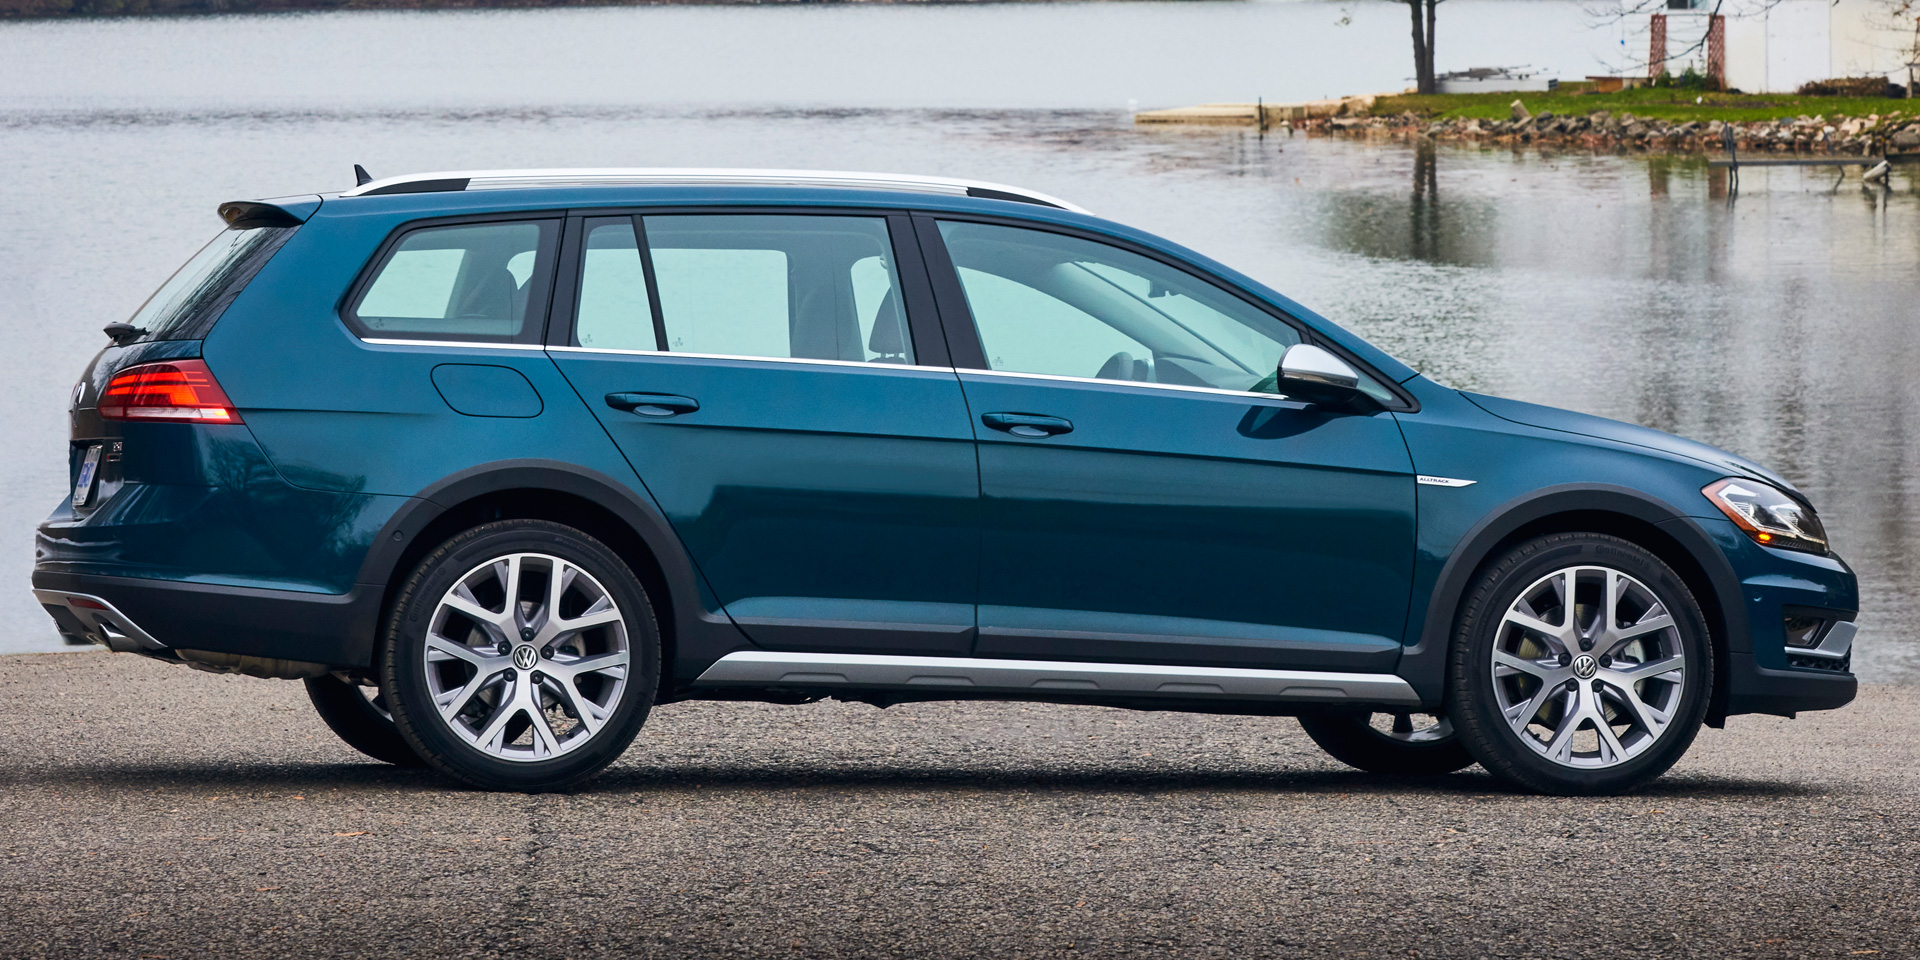 2018 Volkswagen Golf Alltrack Vehicles On Display